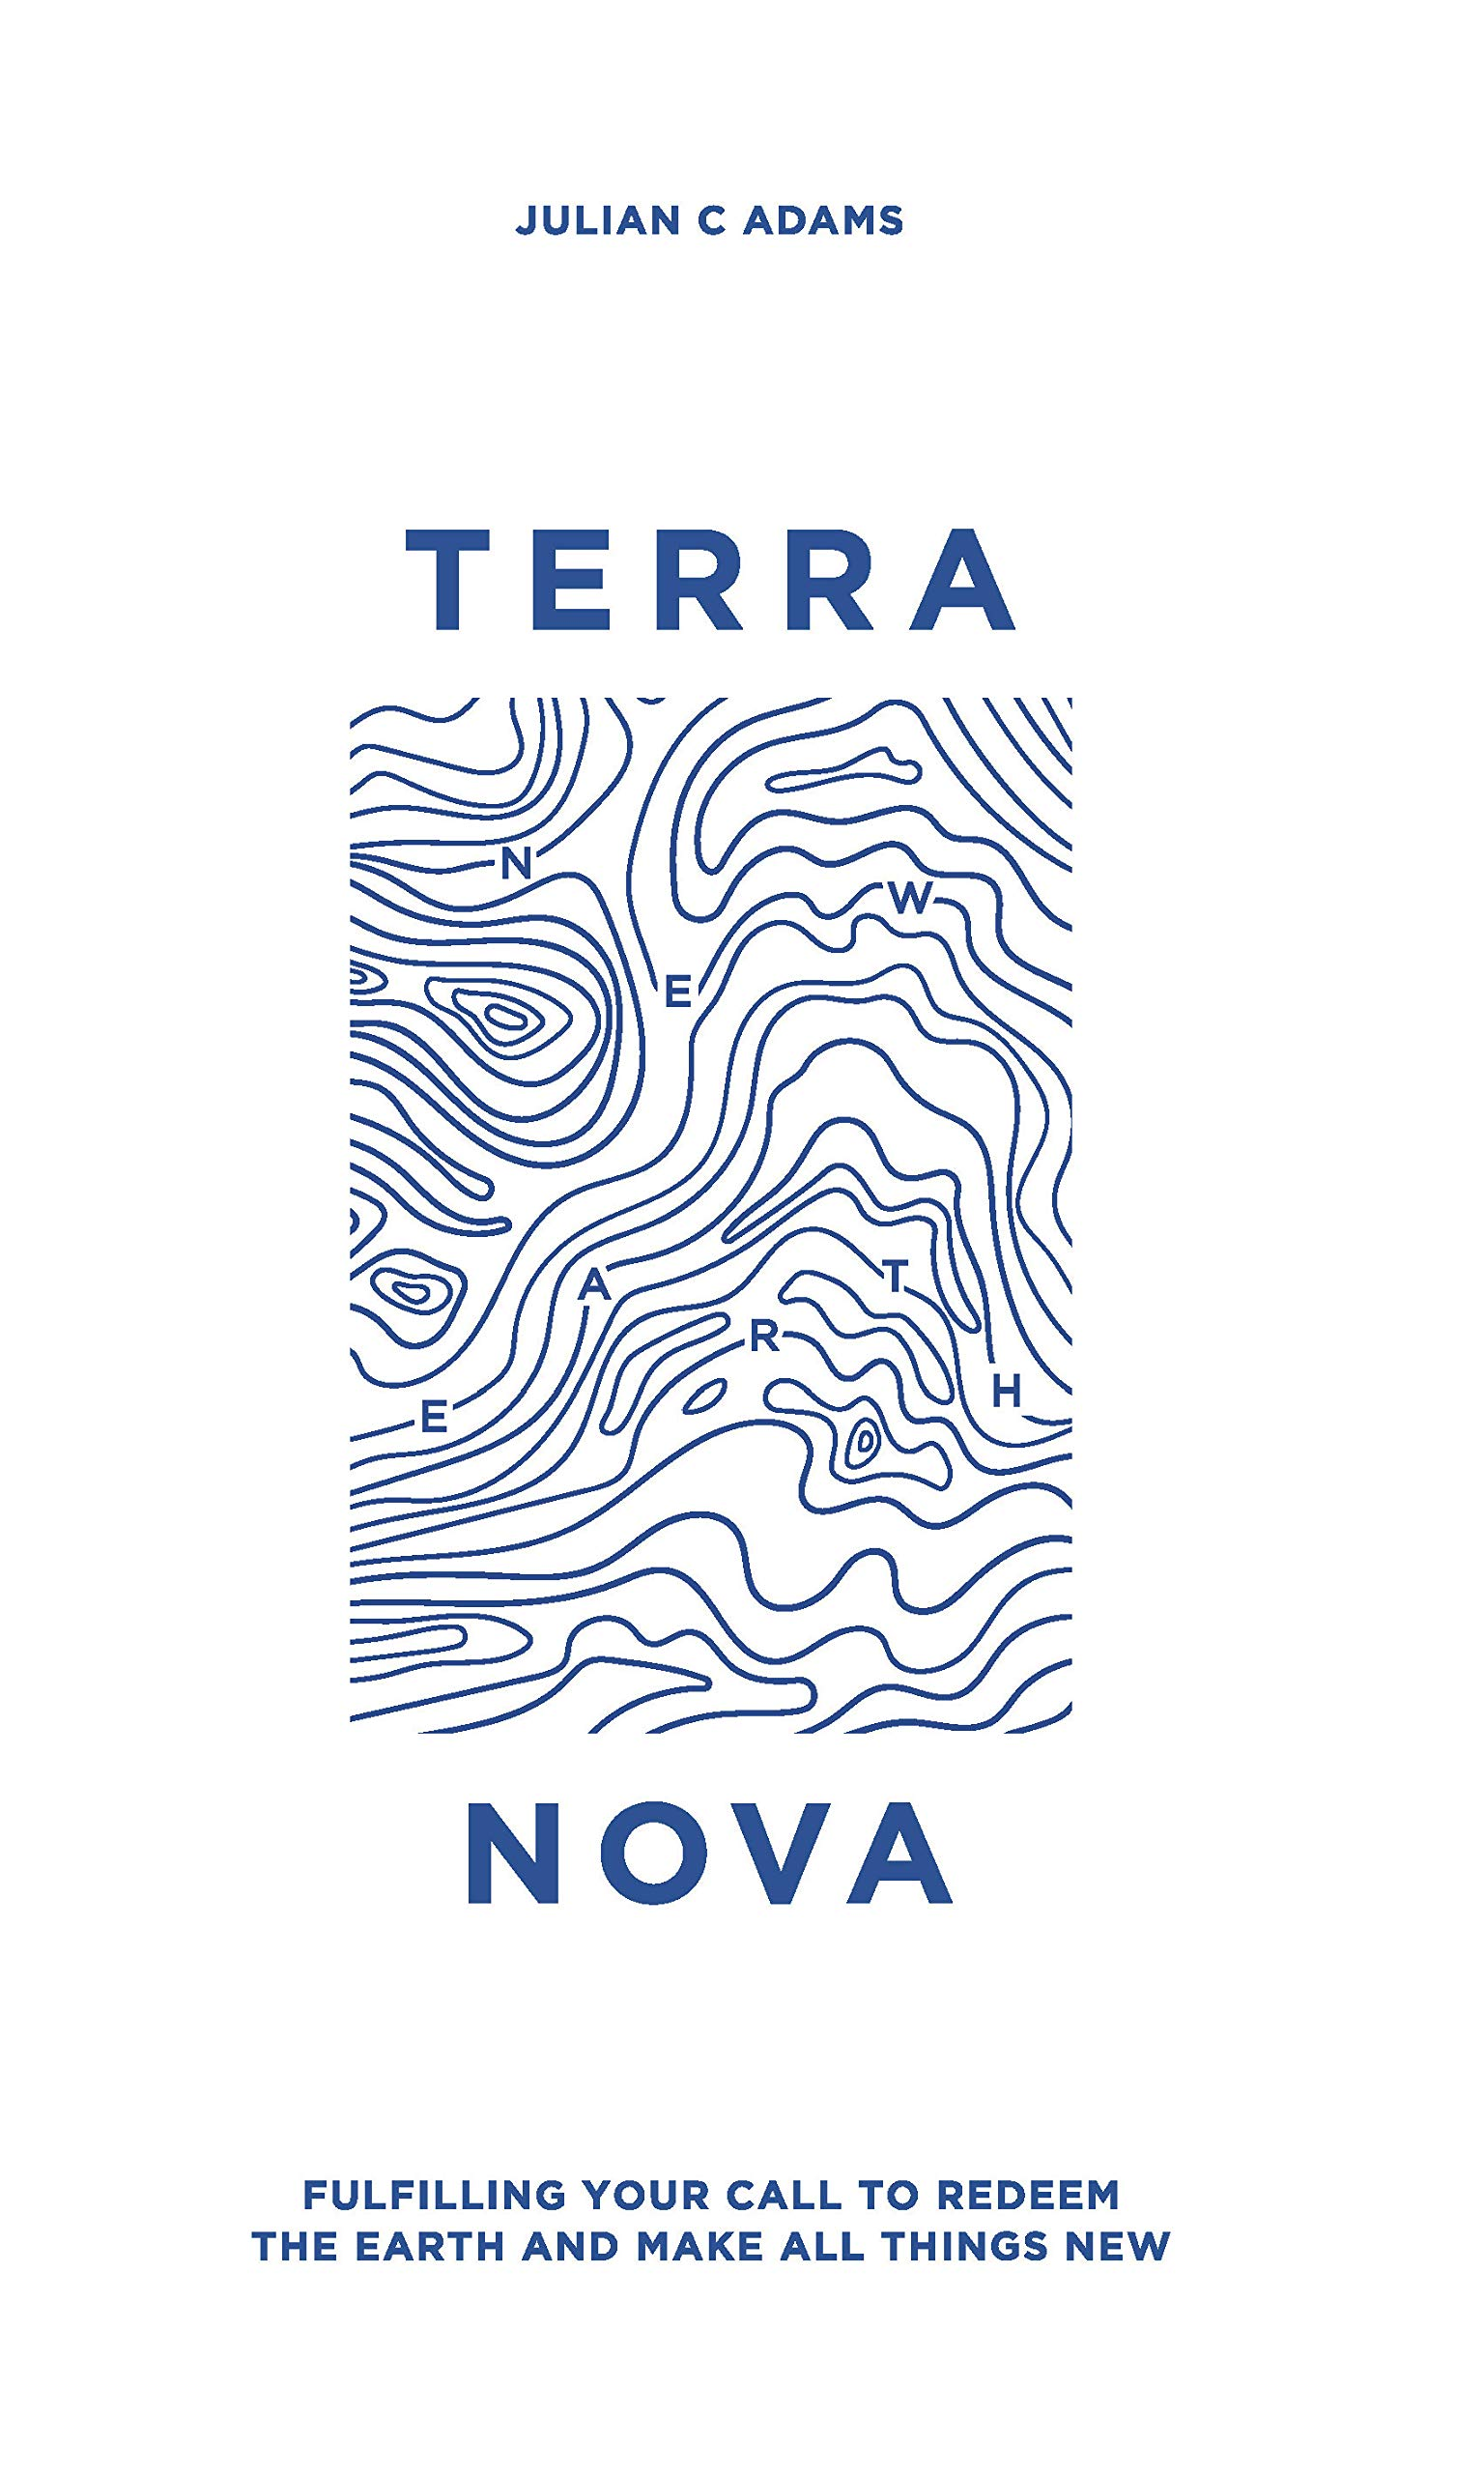 Terra Nova: Fulfilling Your Call to Redeem the Earth and Make All Things New